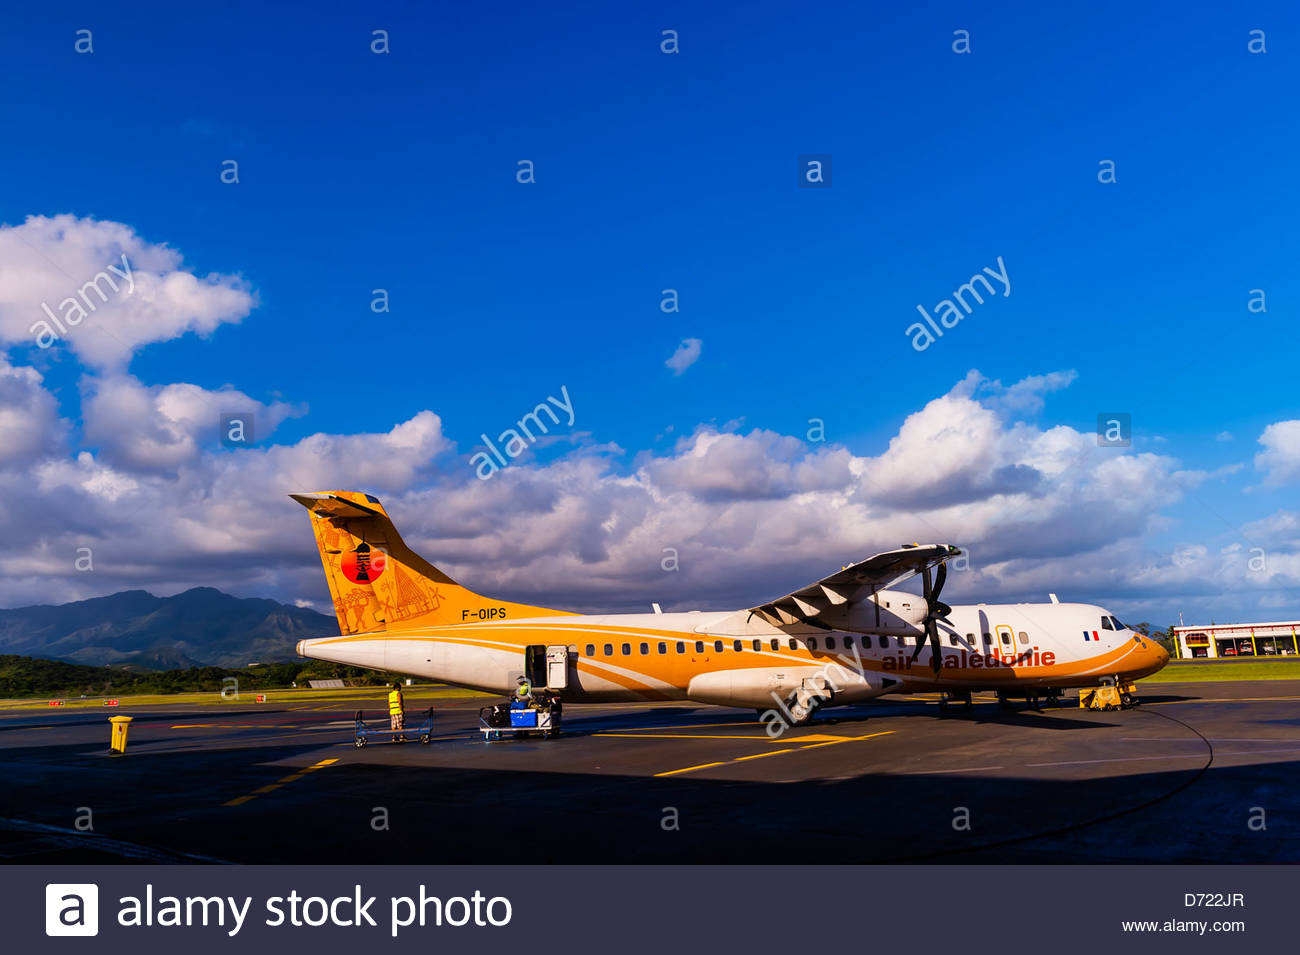 Air Caledonie airplane on tarmac, Noumea Magenta Airport, Noumea, Grand Terre, New Caledonia - Stock Image